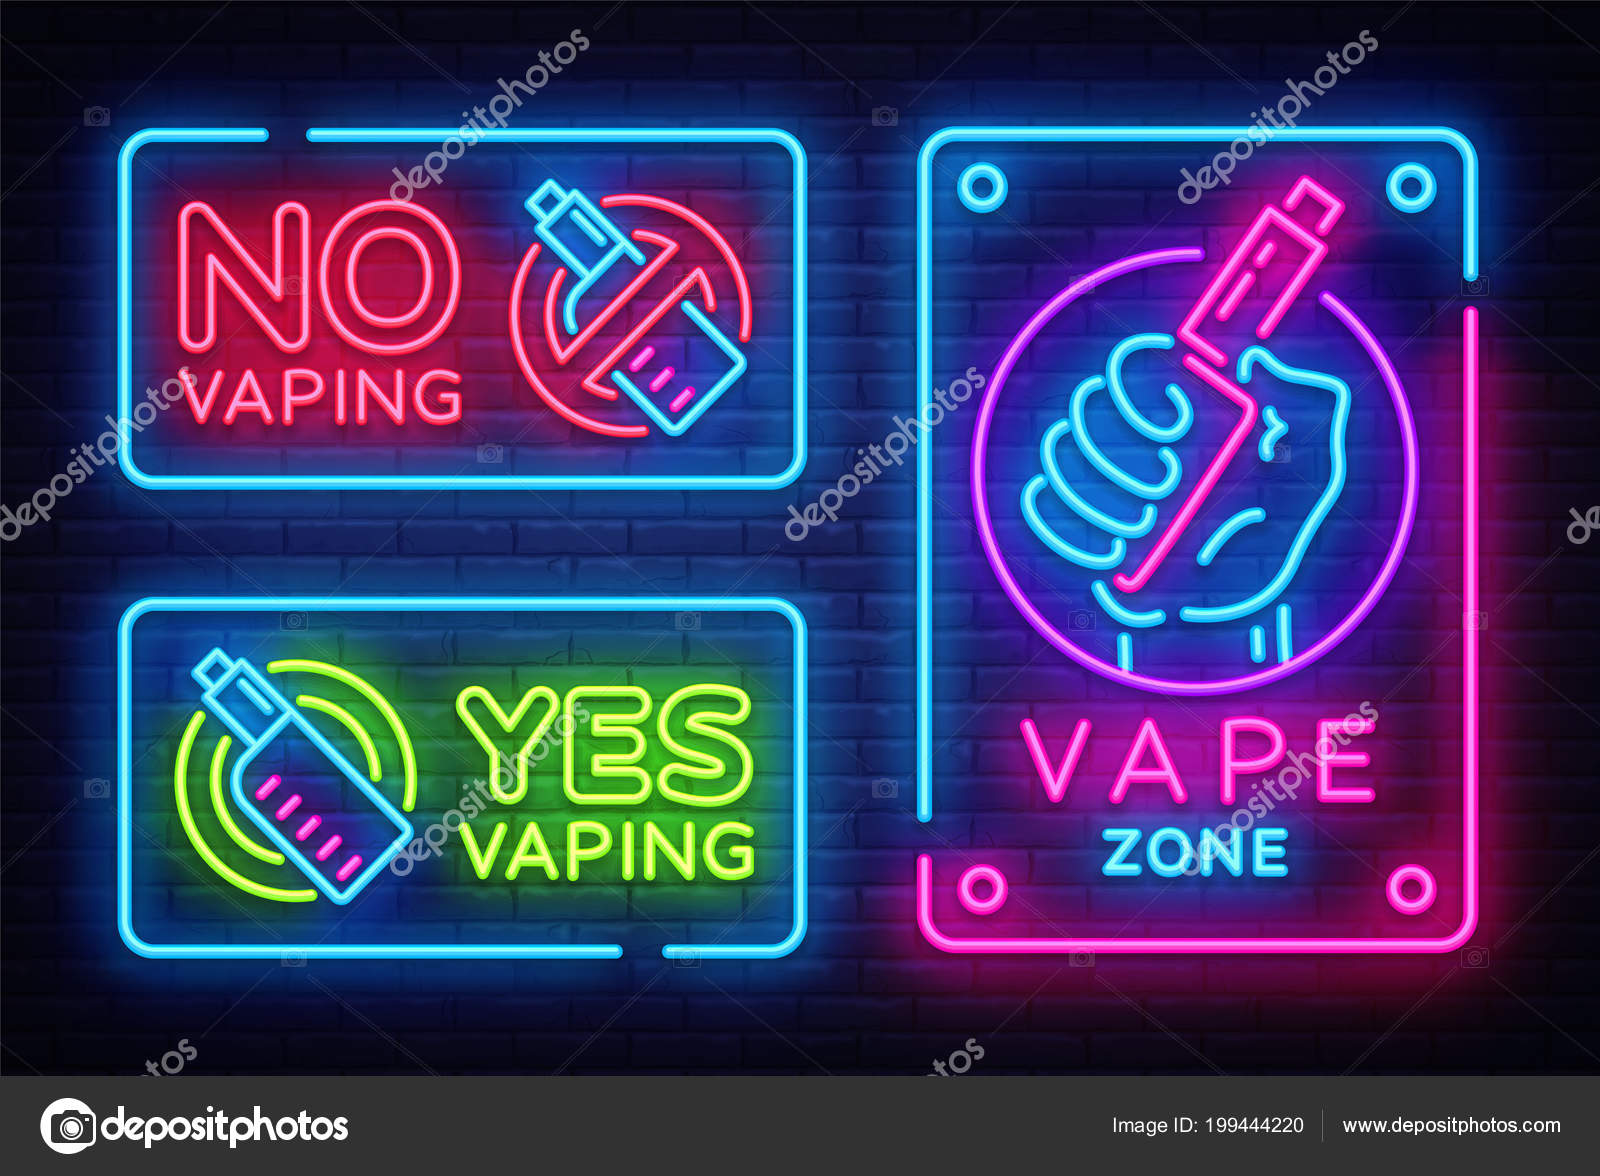 Vaping neon signs collection vector template, light banner, bright